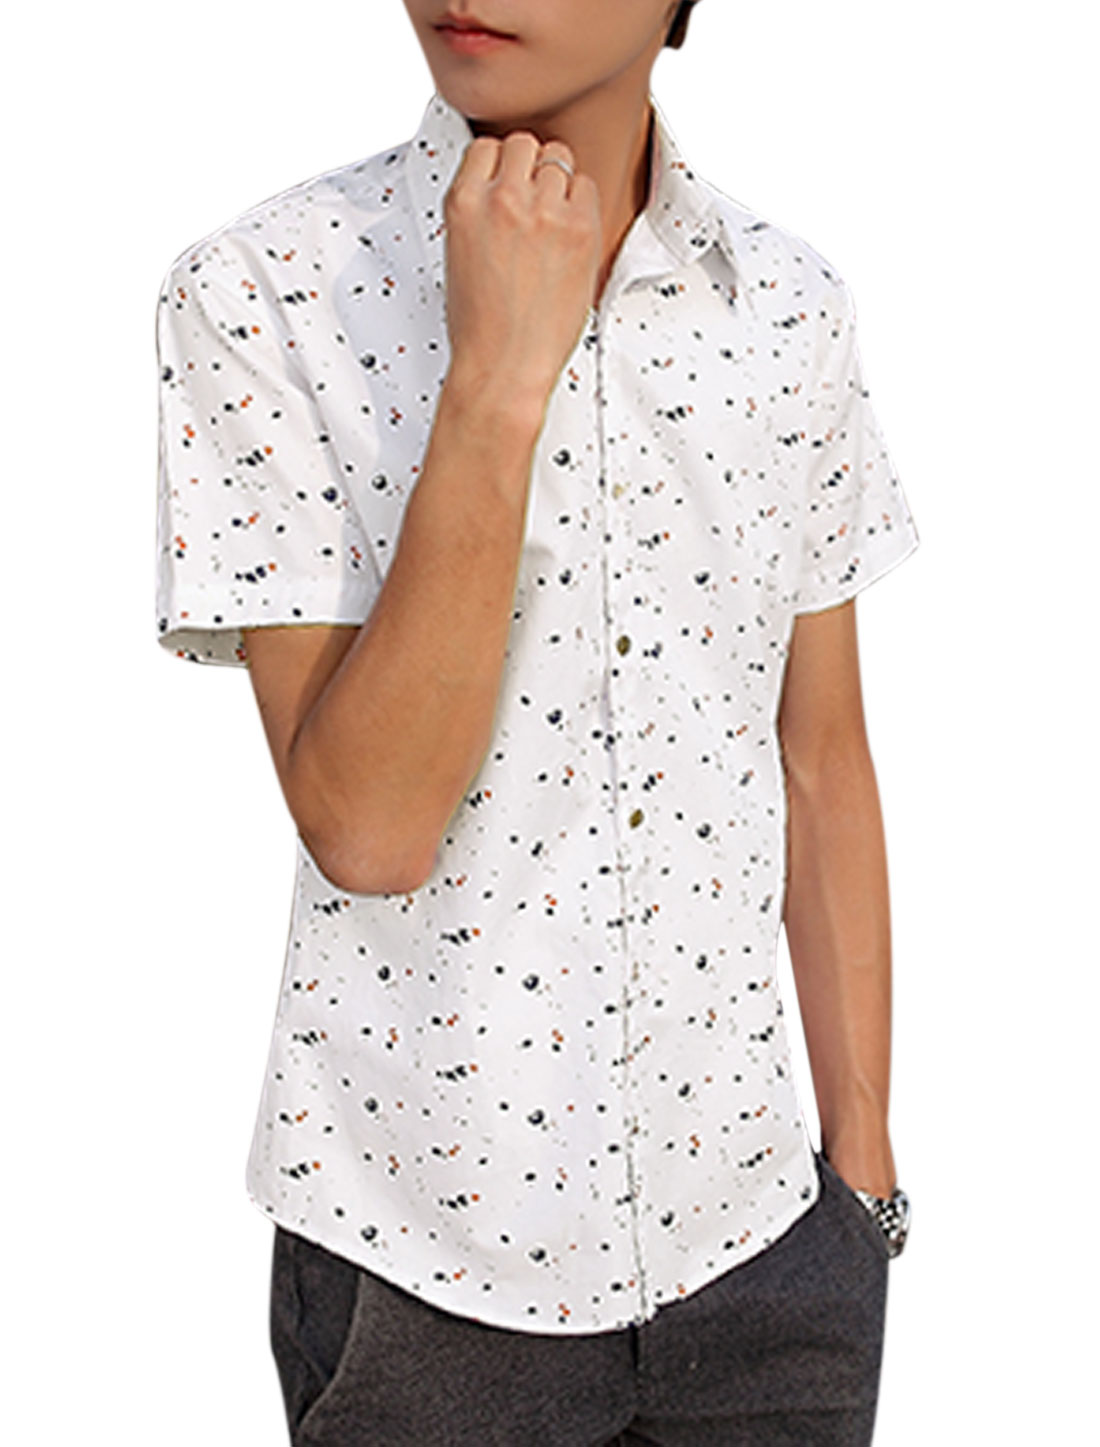 Men Novelty Pattern Slim Fit Button Down Casual Shirts Whites S